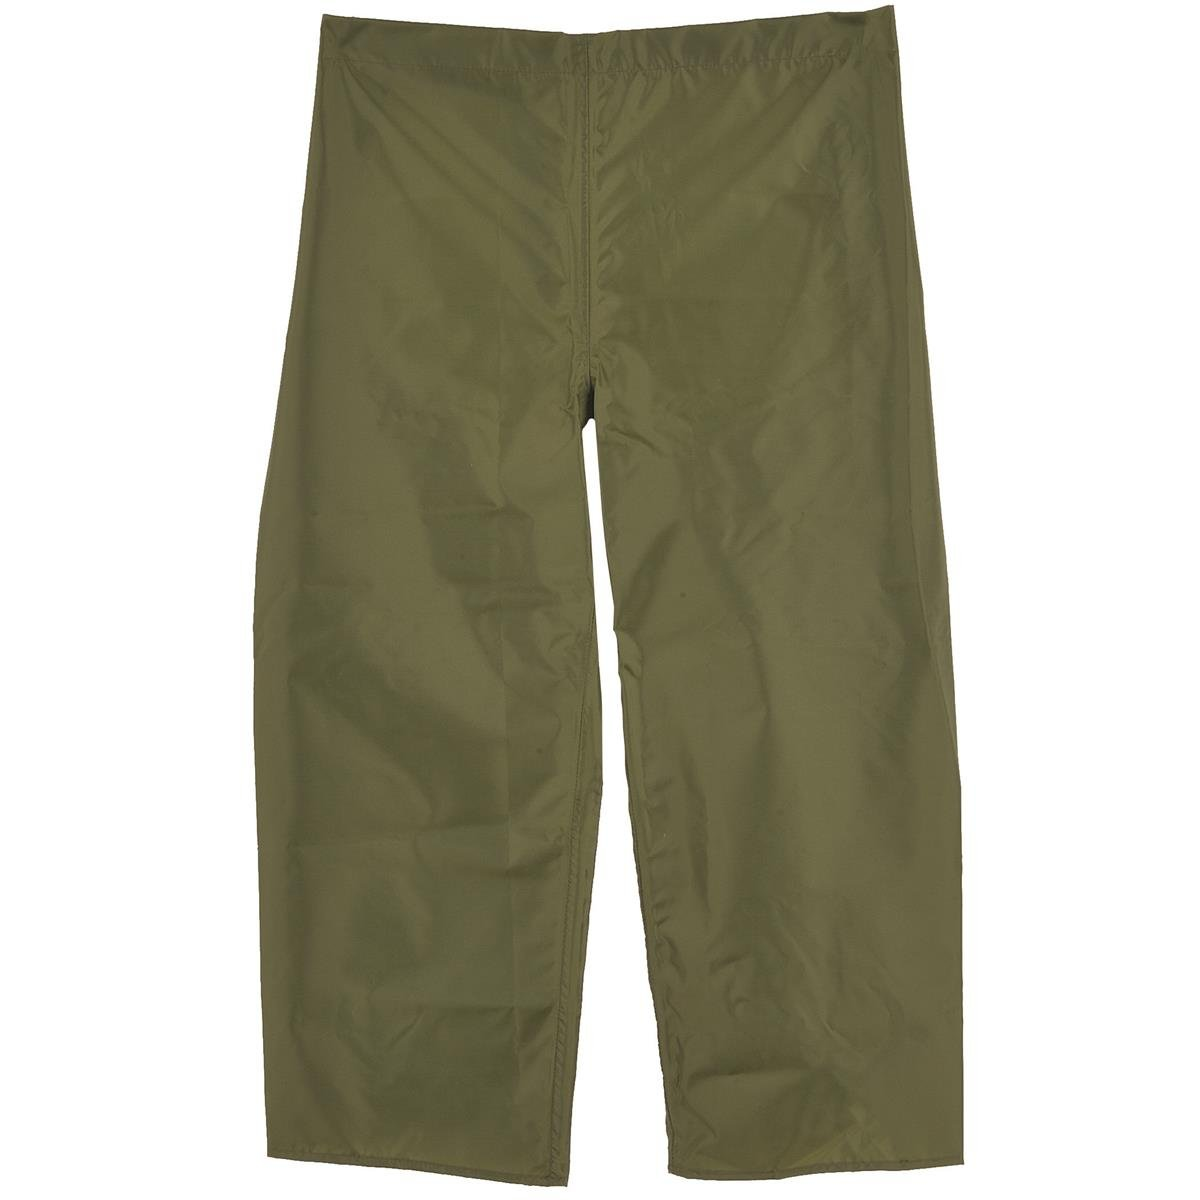 GEMPLER'S Full Front Lower Body Protective Spraying Safety Chaps, Olive Green, Lightweight, Chemical Resistant, One Size Fits Most - Protects from Class III and IV pesticides. by GEMPLER'S